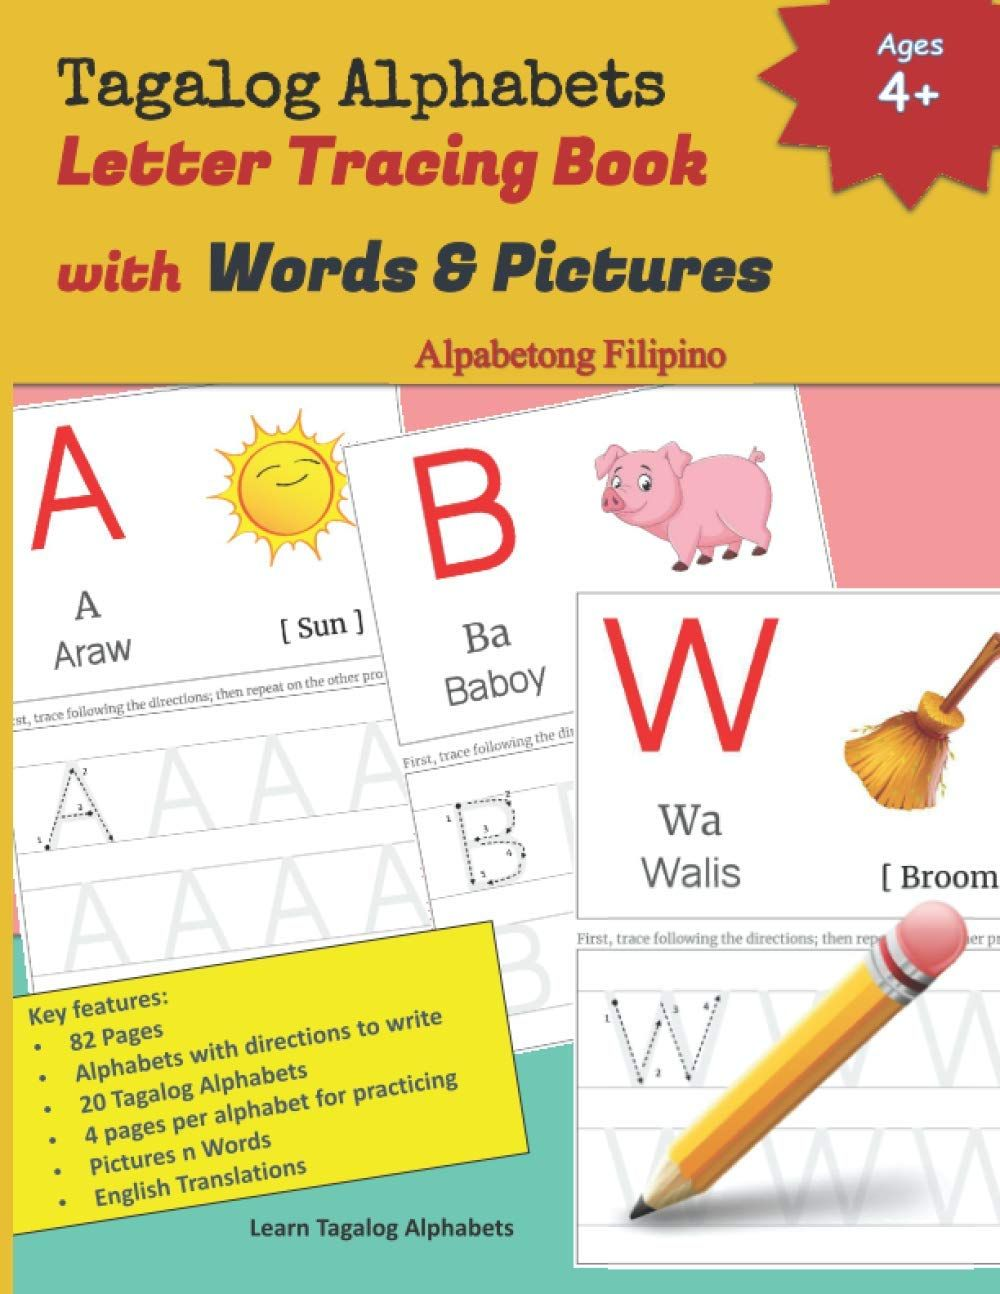 Tagalog Alphabets Letter Tracing Book With Words Pictures Alpabetong Filipino Tagalog Abakada In 2021 Word Pictures Alphabet Pictures Tracing Letters [ 1294 x 1000 Pixel ]